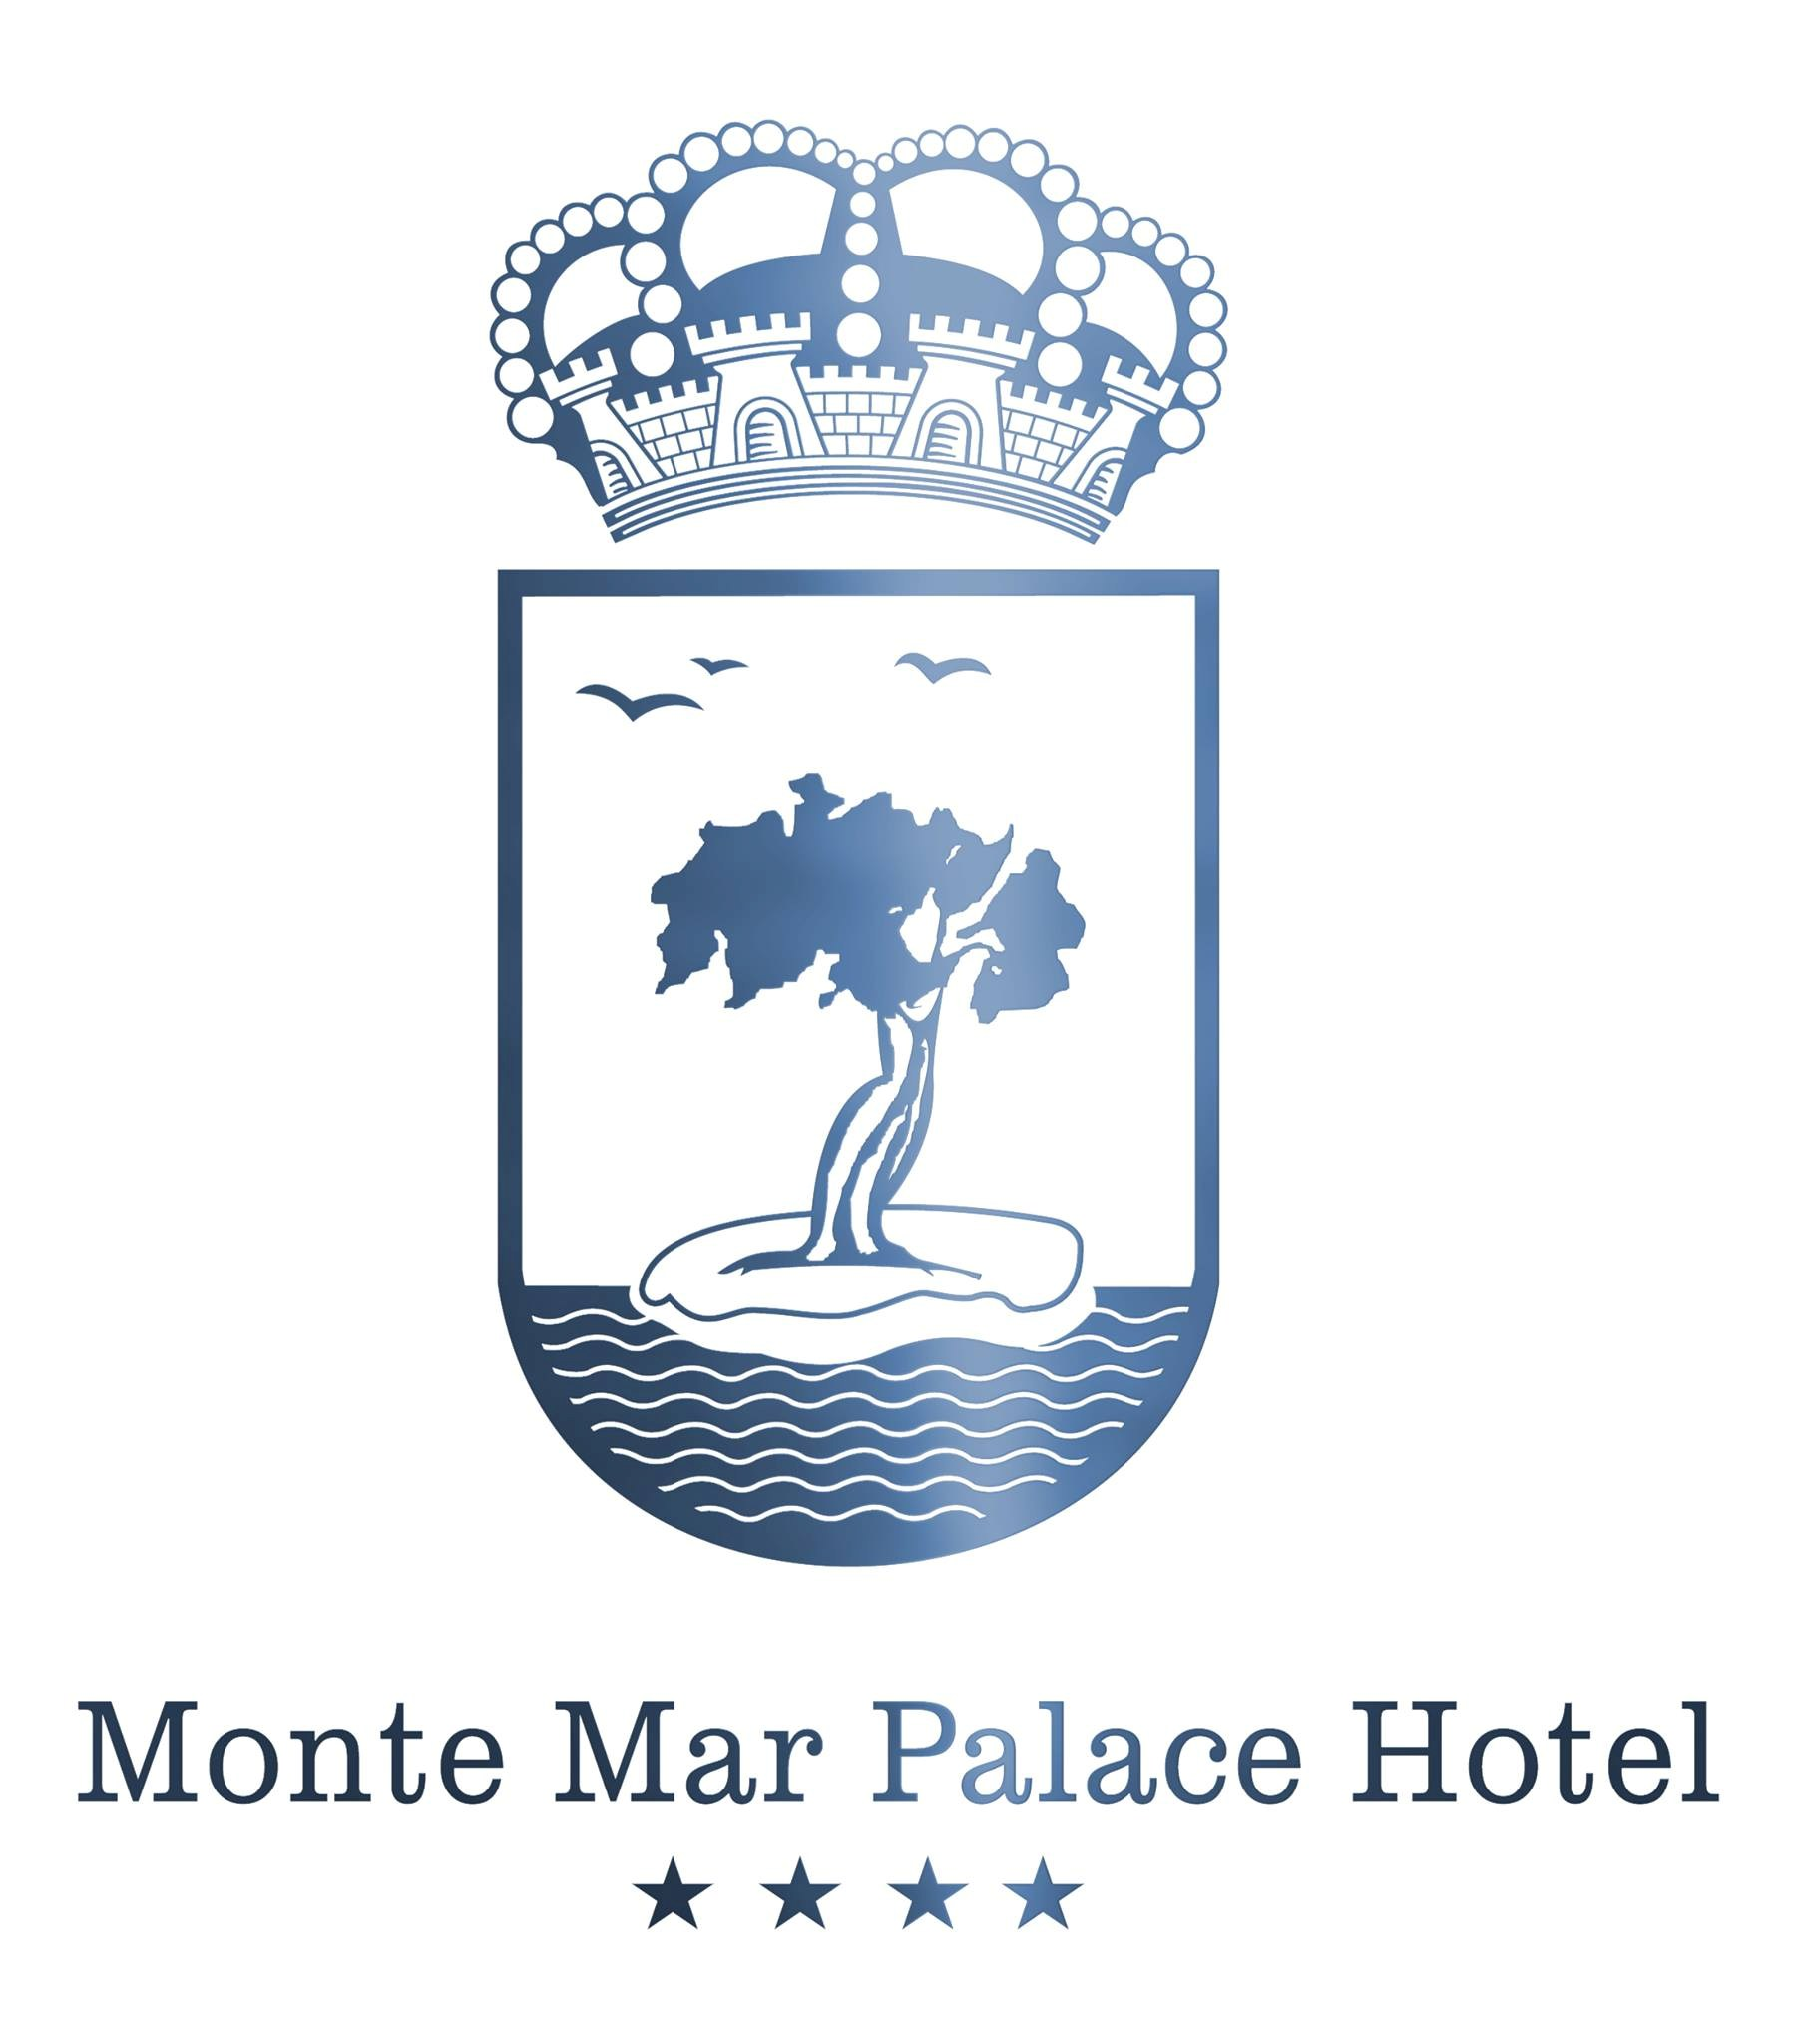 Monte Mar Palace Hotel